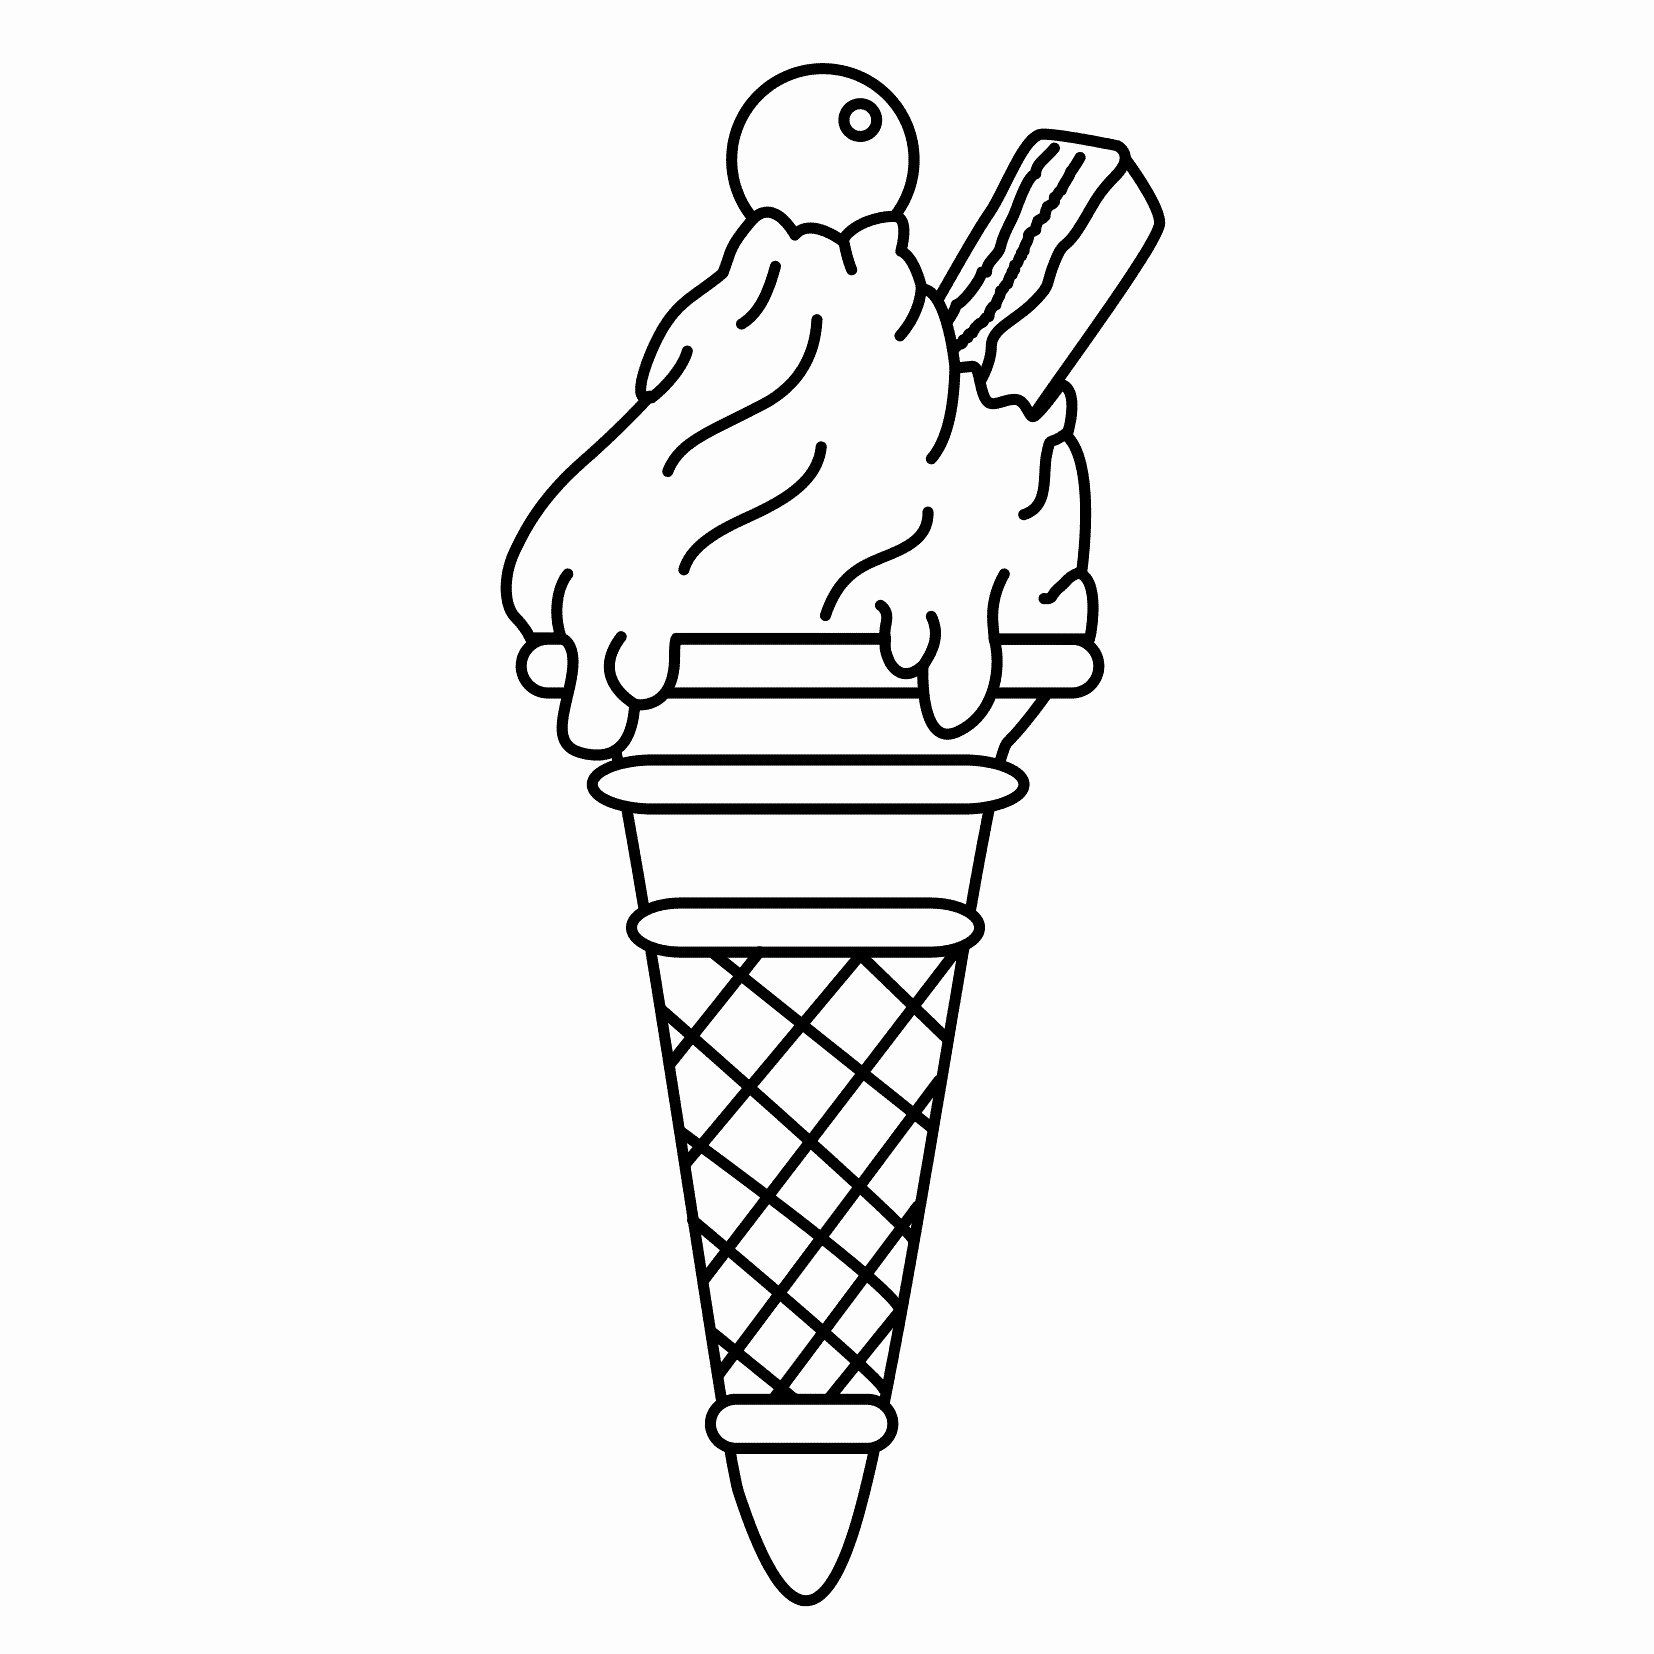 Ice Cream Coloring Pages Printable Best Of Free Printable Ice Cream Coloring Pages For Kids Ice Cream Coloring Pages Ice Cream Cone Drawing Coloring Pages